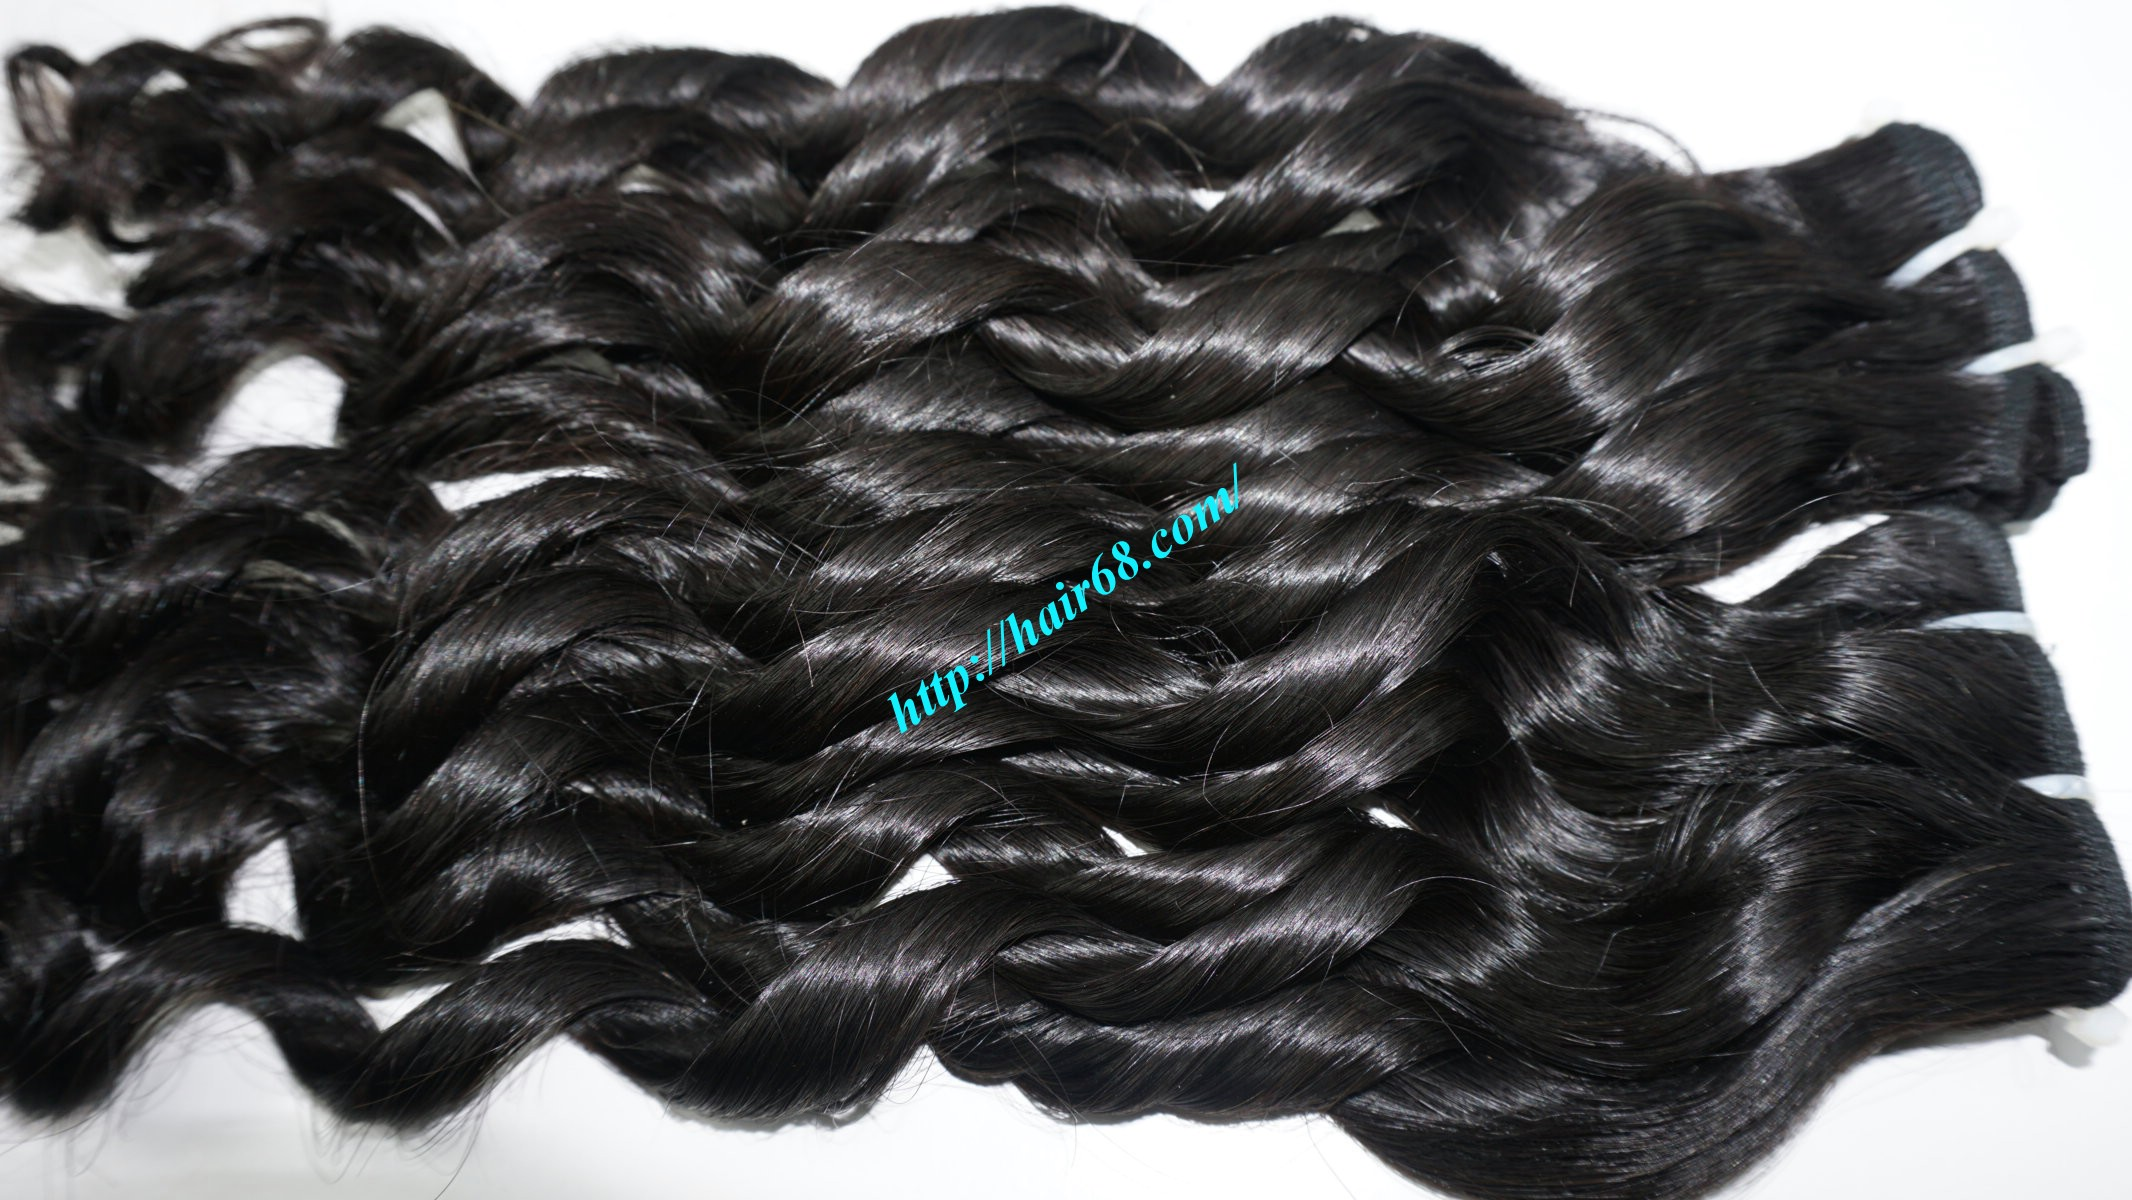 20 inch - Weave Loose Curly Hair Extensions - Double Drawn 11